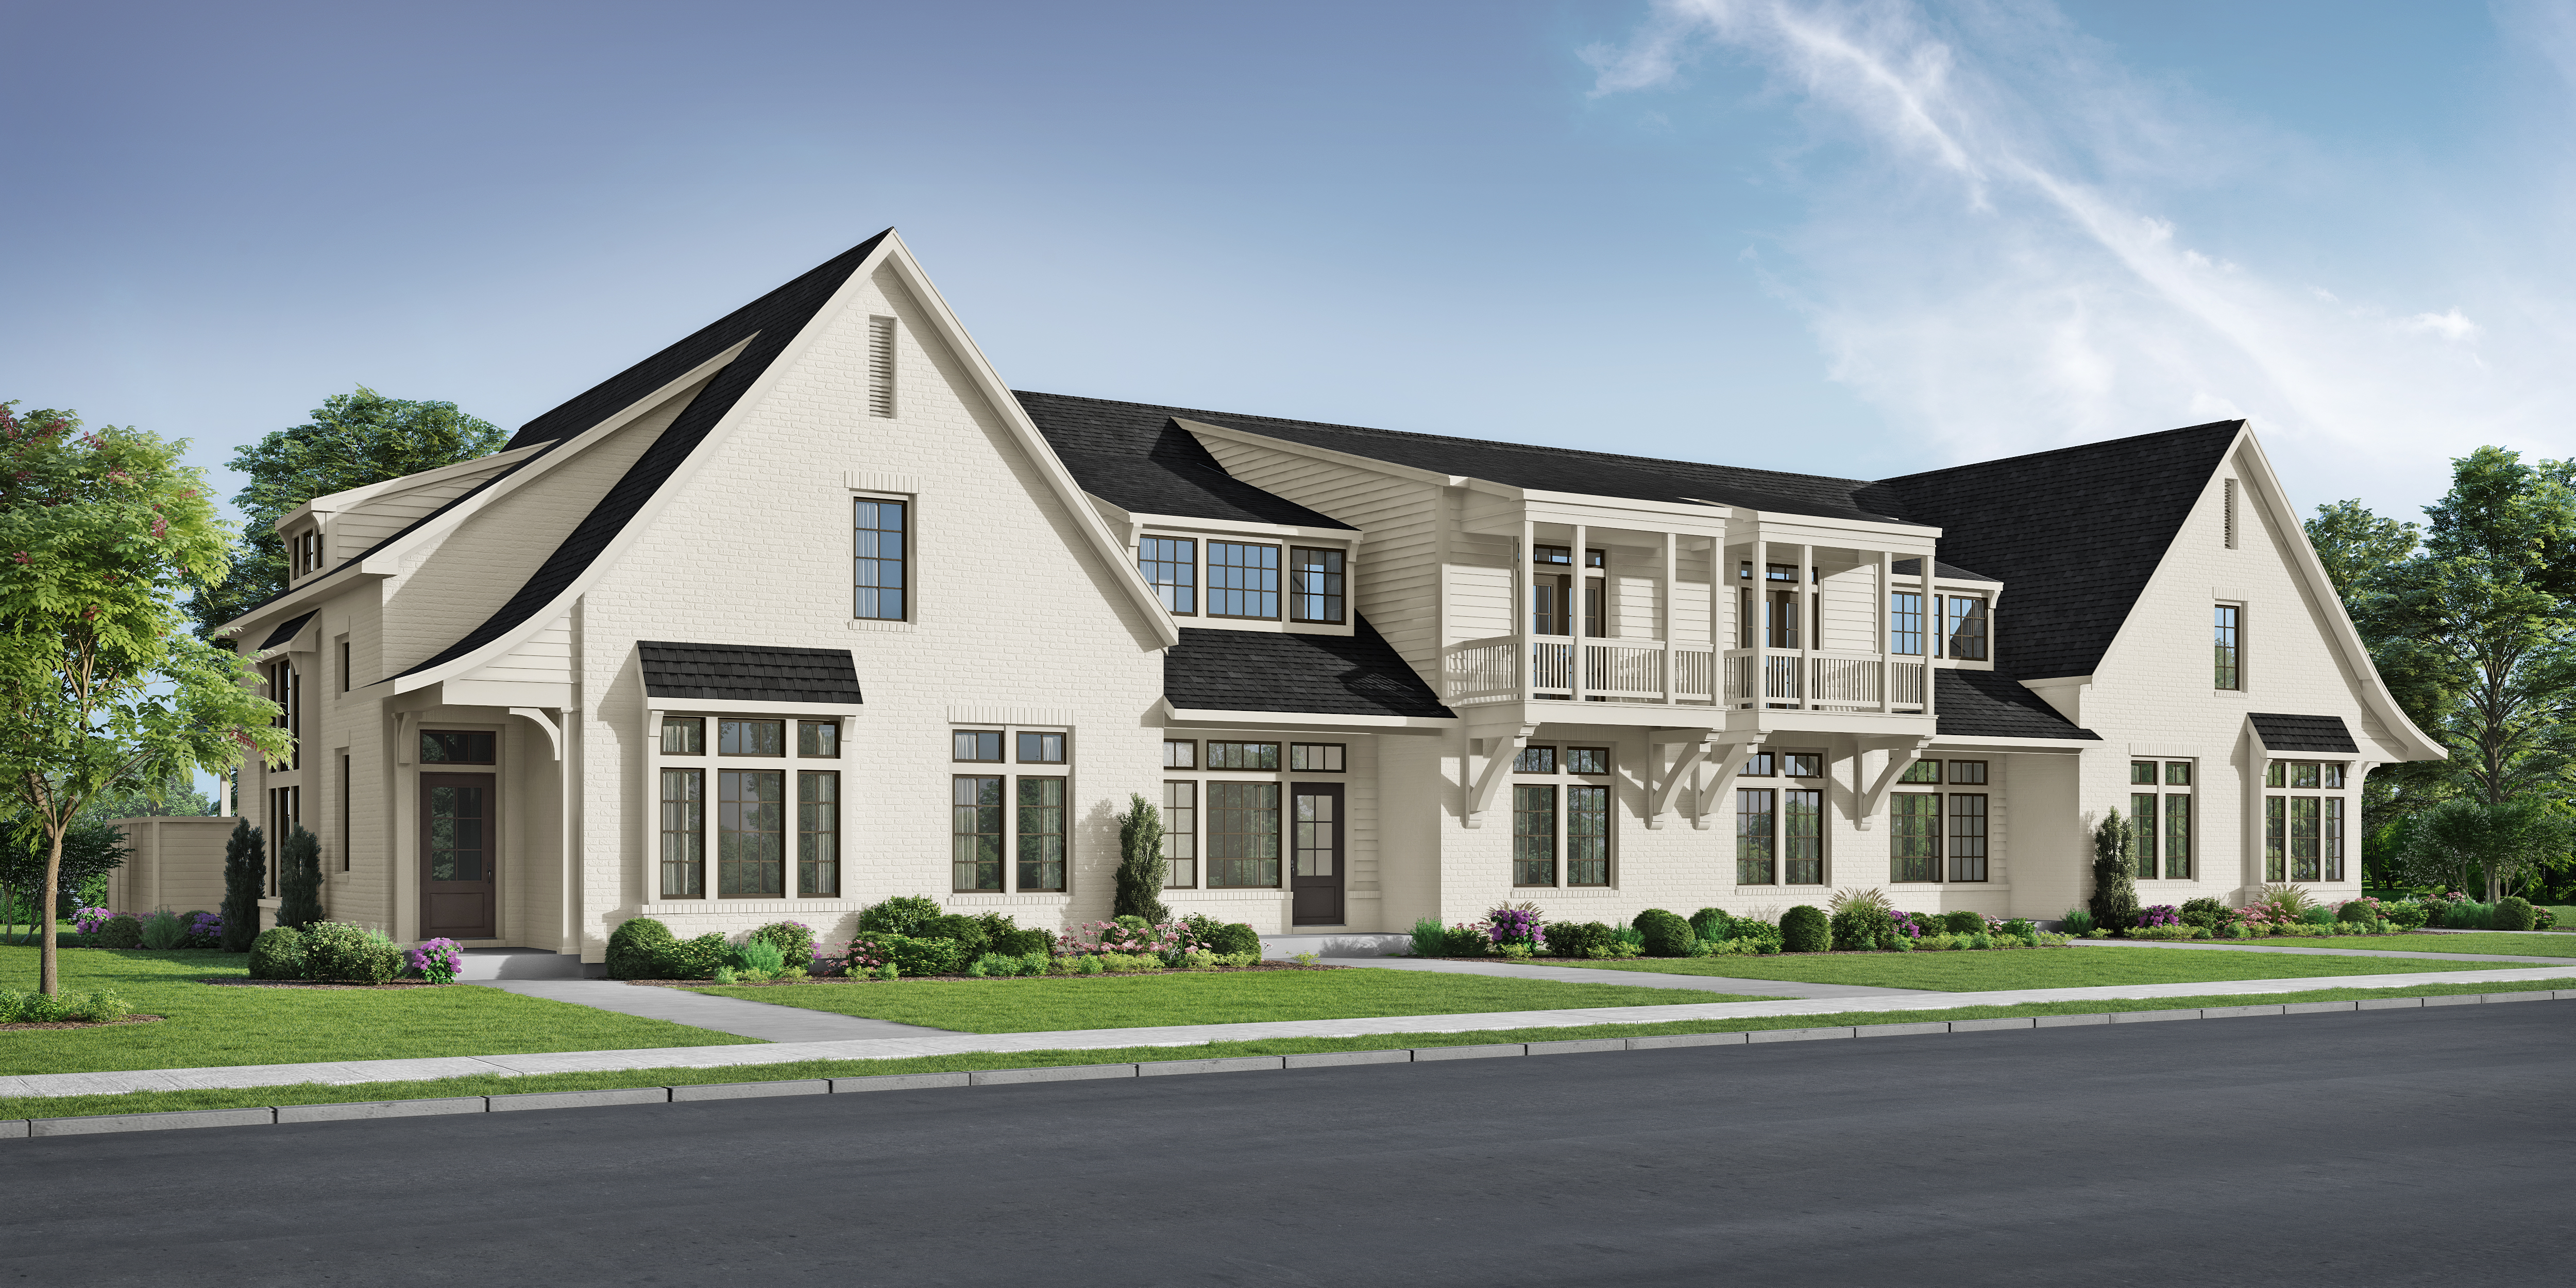 The Bray Townhomes at Liberty Park